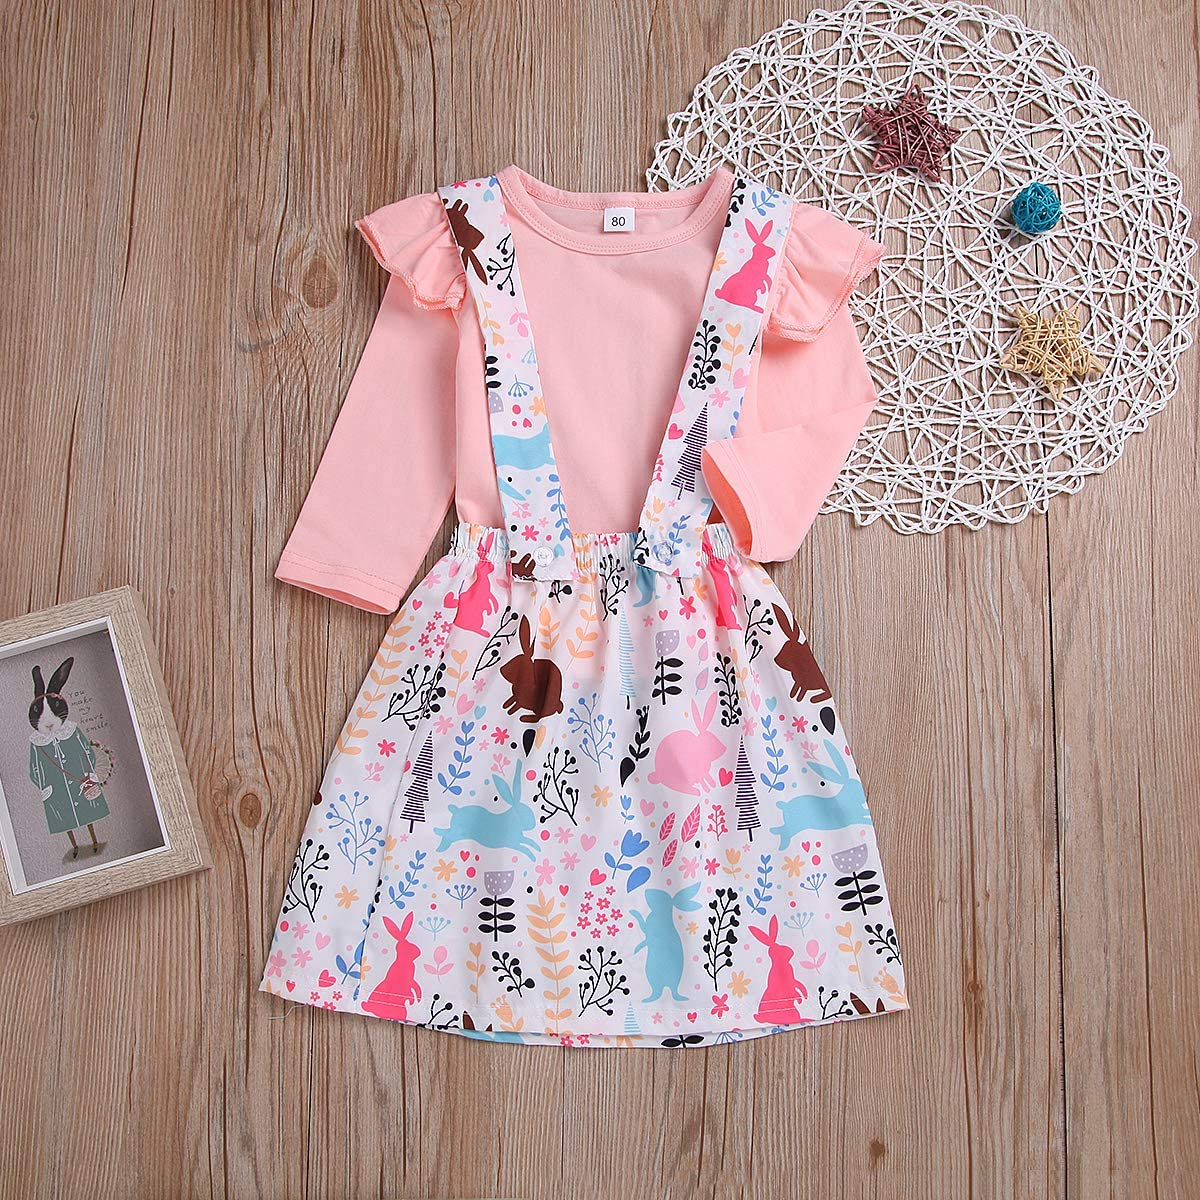 Toddler Baby Girl Easter Clothes Skirt Set Ruffle Sleeves Top Rabbit Print Floral Suspender Skirt Tutu Dress Outfits